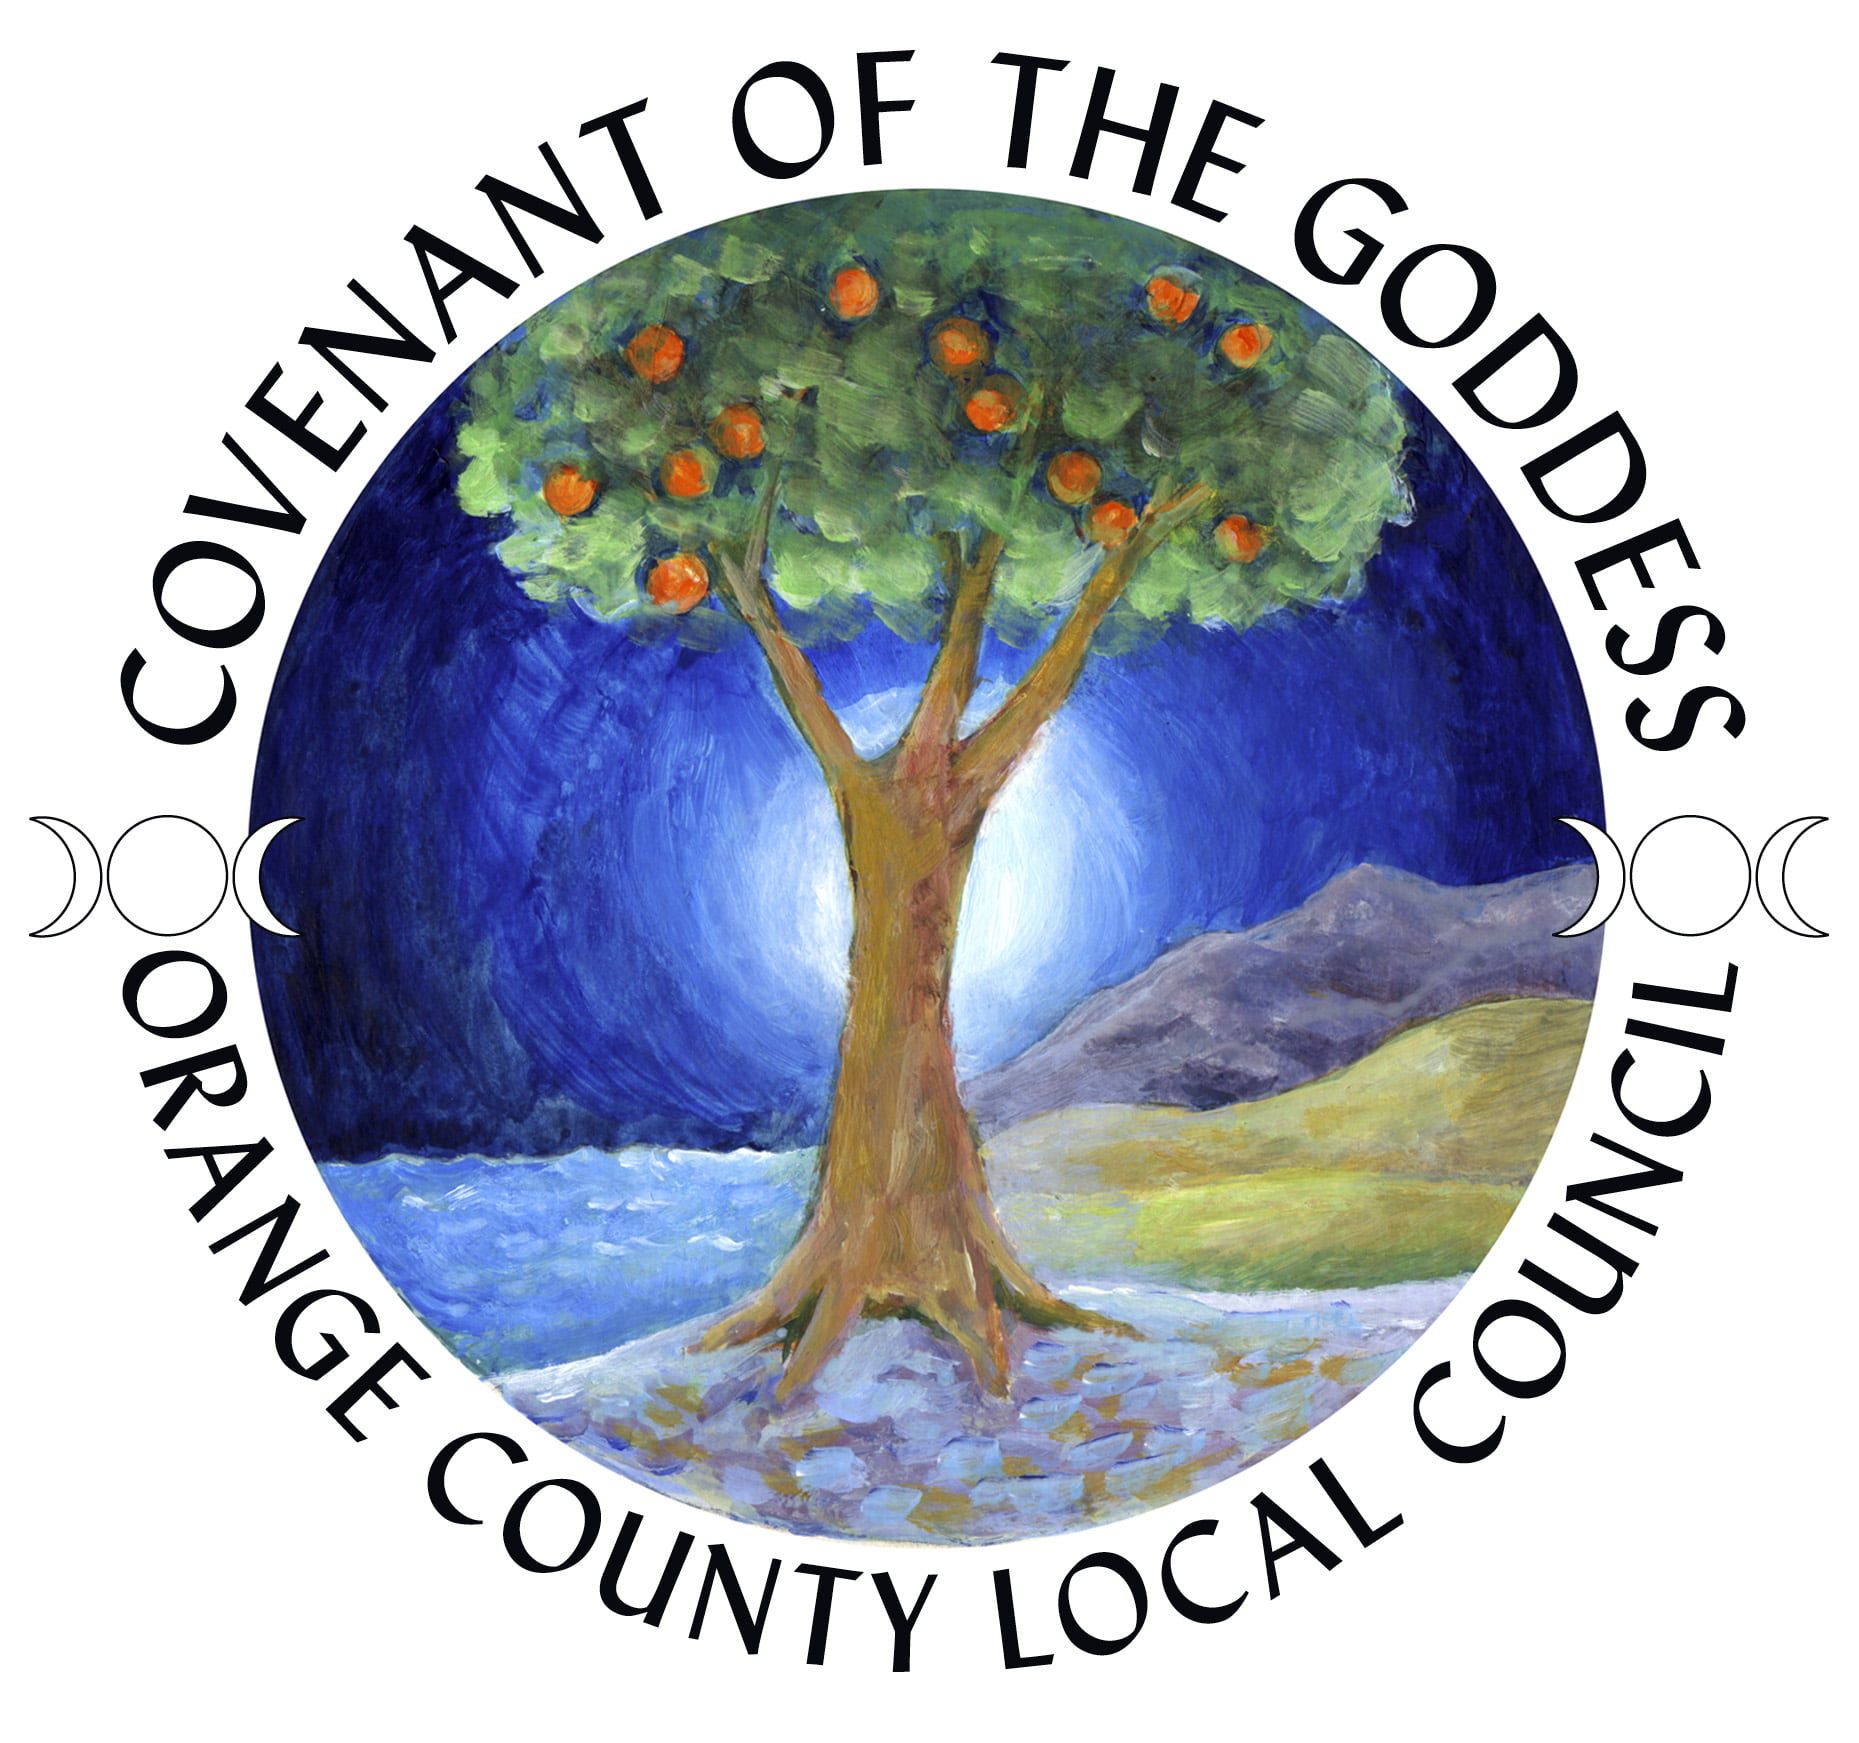 Orange County Local Council of Covenant of the Goddess